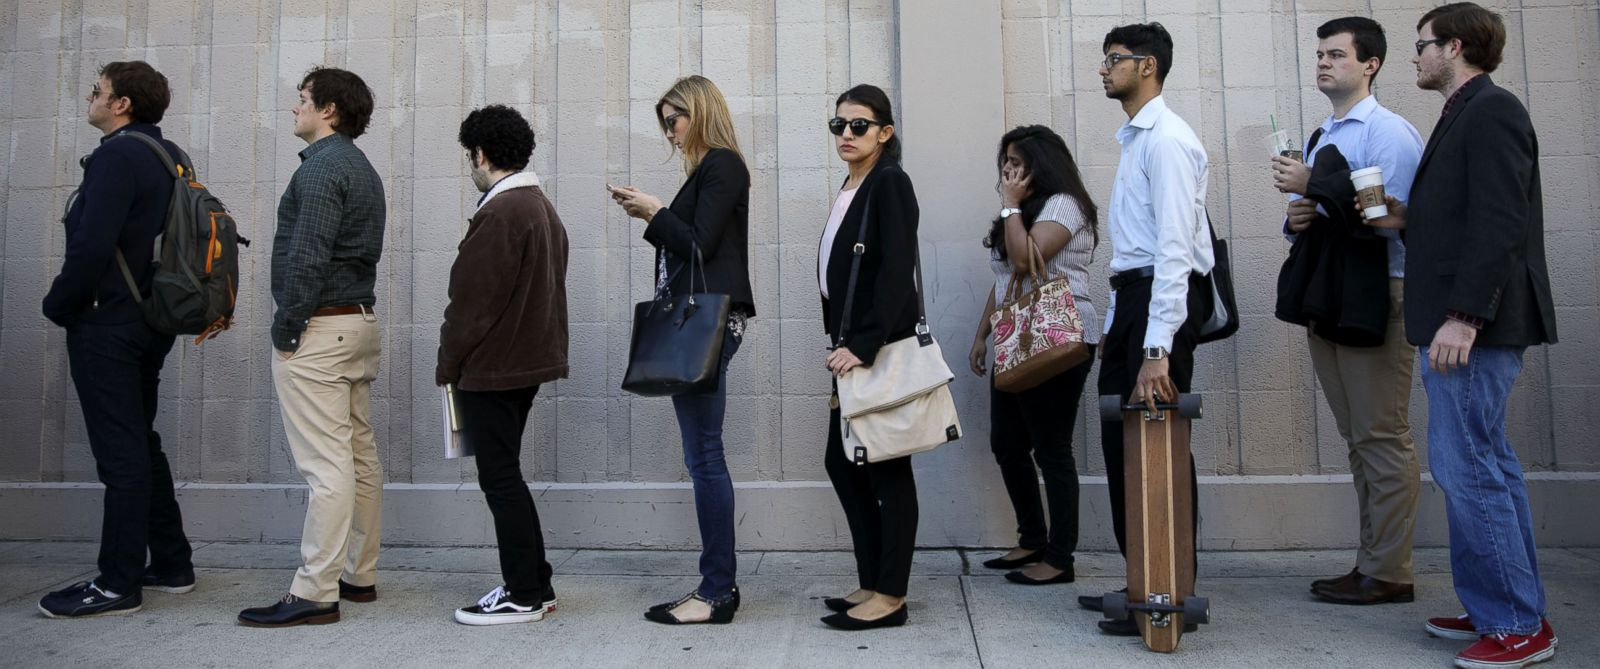 analysis retail takes a hit in disappointing jobs report abc news photo job seekers wait in line during the techfair la job fair in los angeles